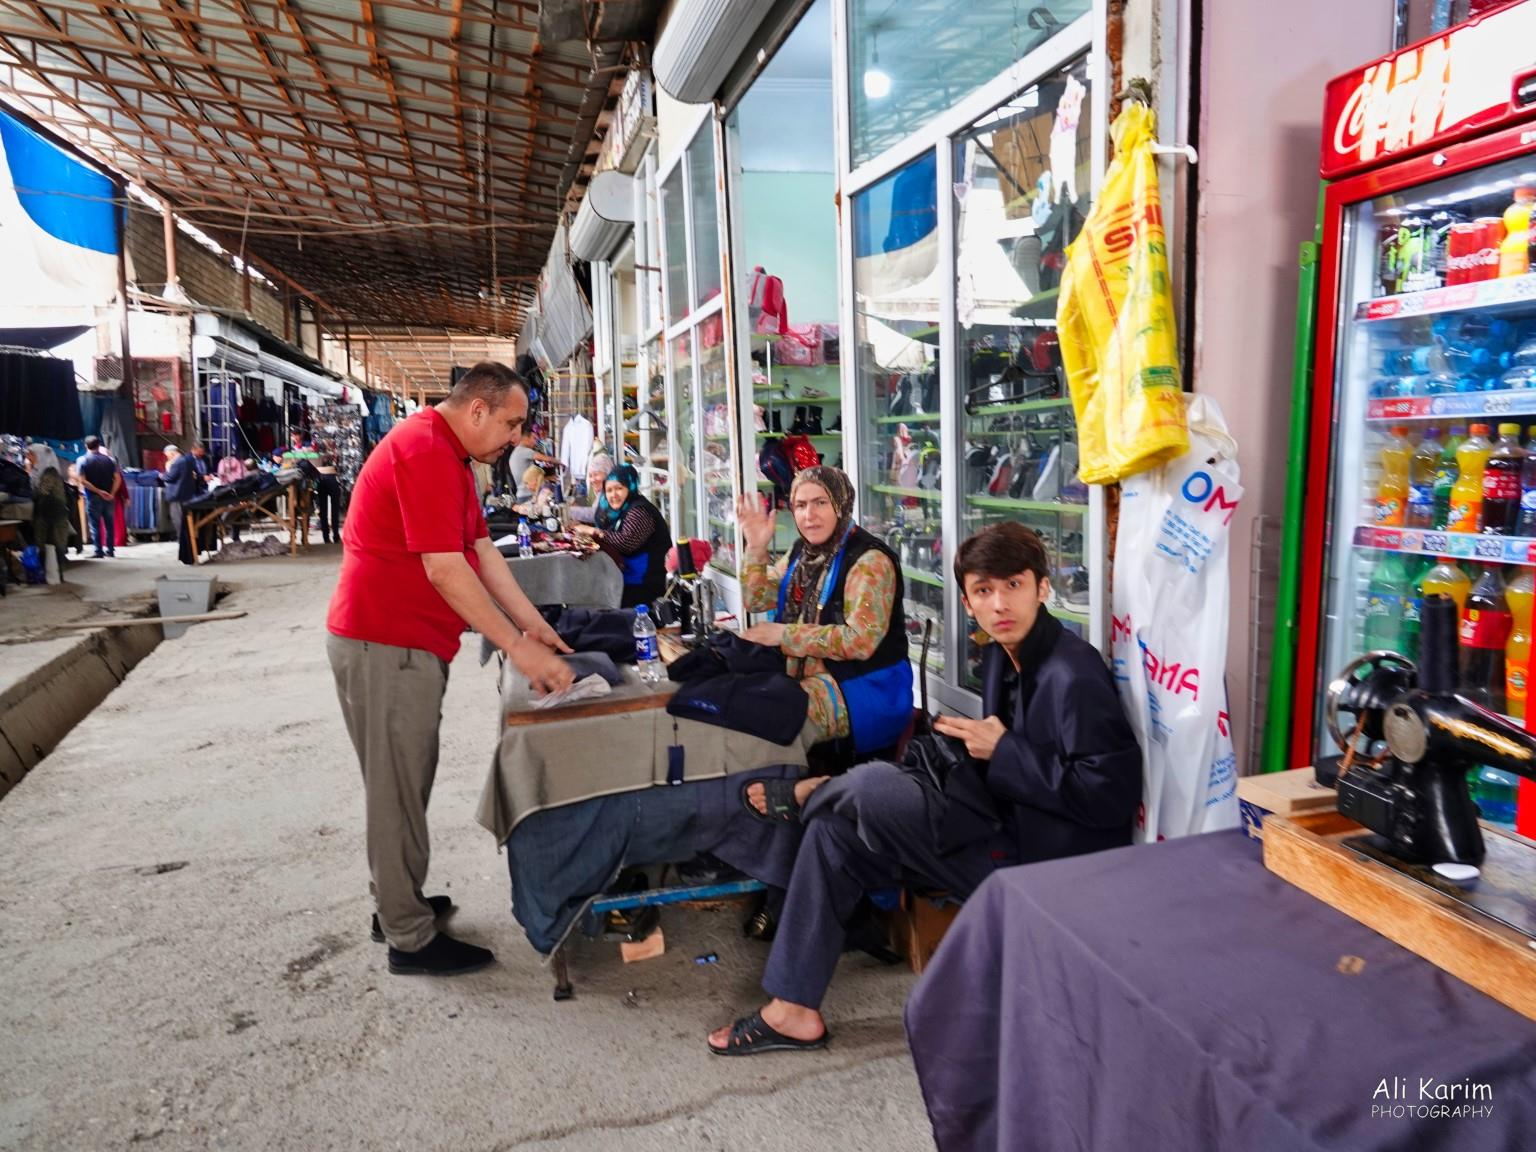 More Dushanbe, Tajikistan Clothing alterations were done on the spot by a line of women on sewing machines